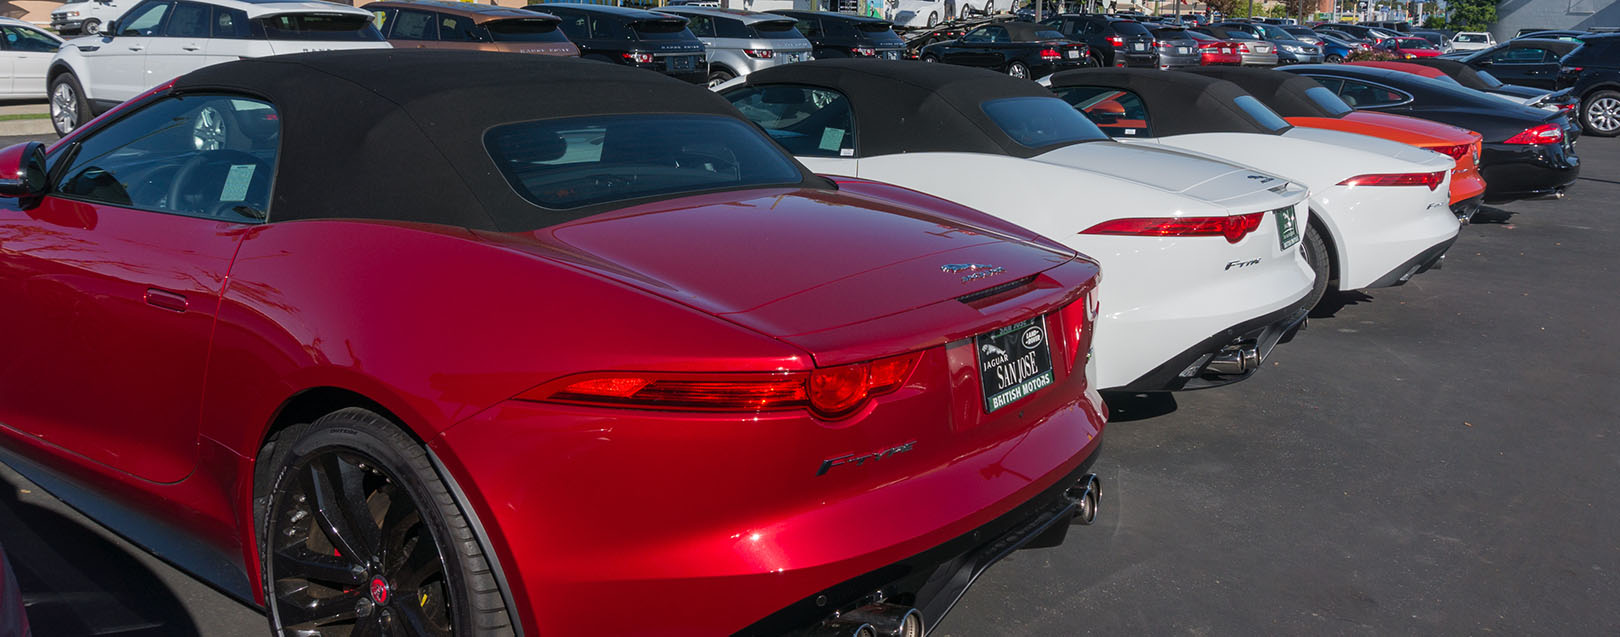 JLR witnesses best ever sales in January, up by 4%